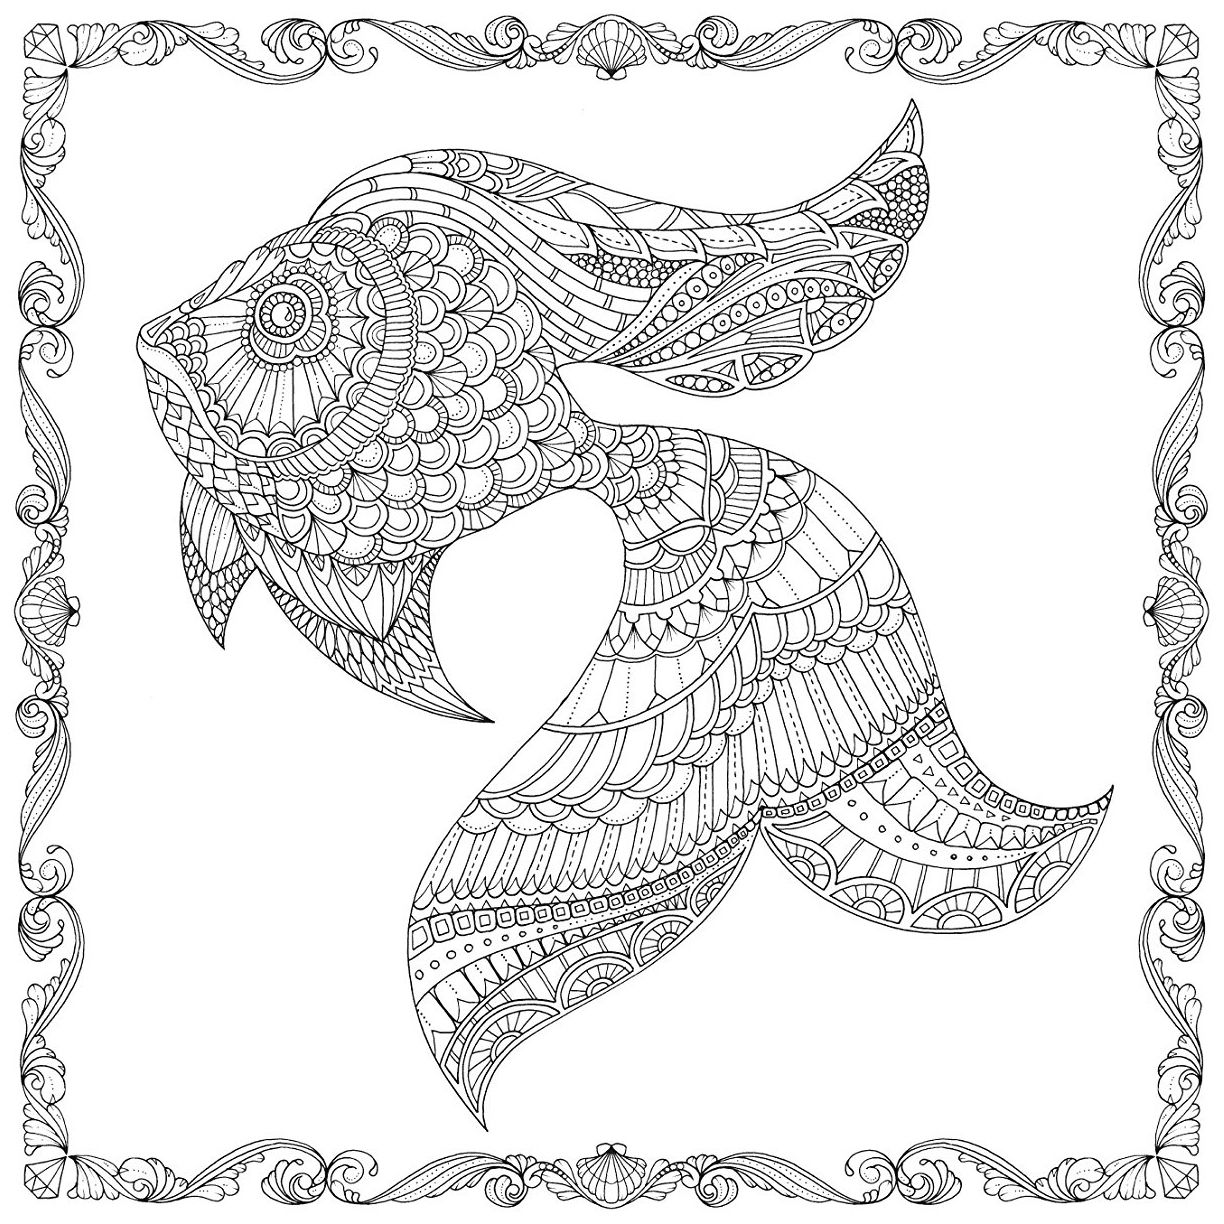 lost ocean colouring book google zoeken - Ocean Coloring Book